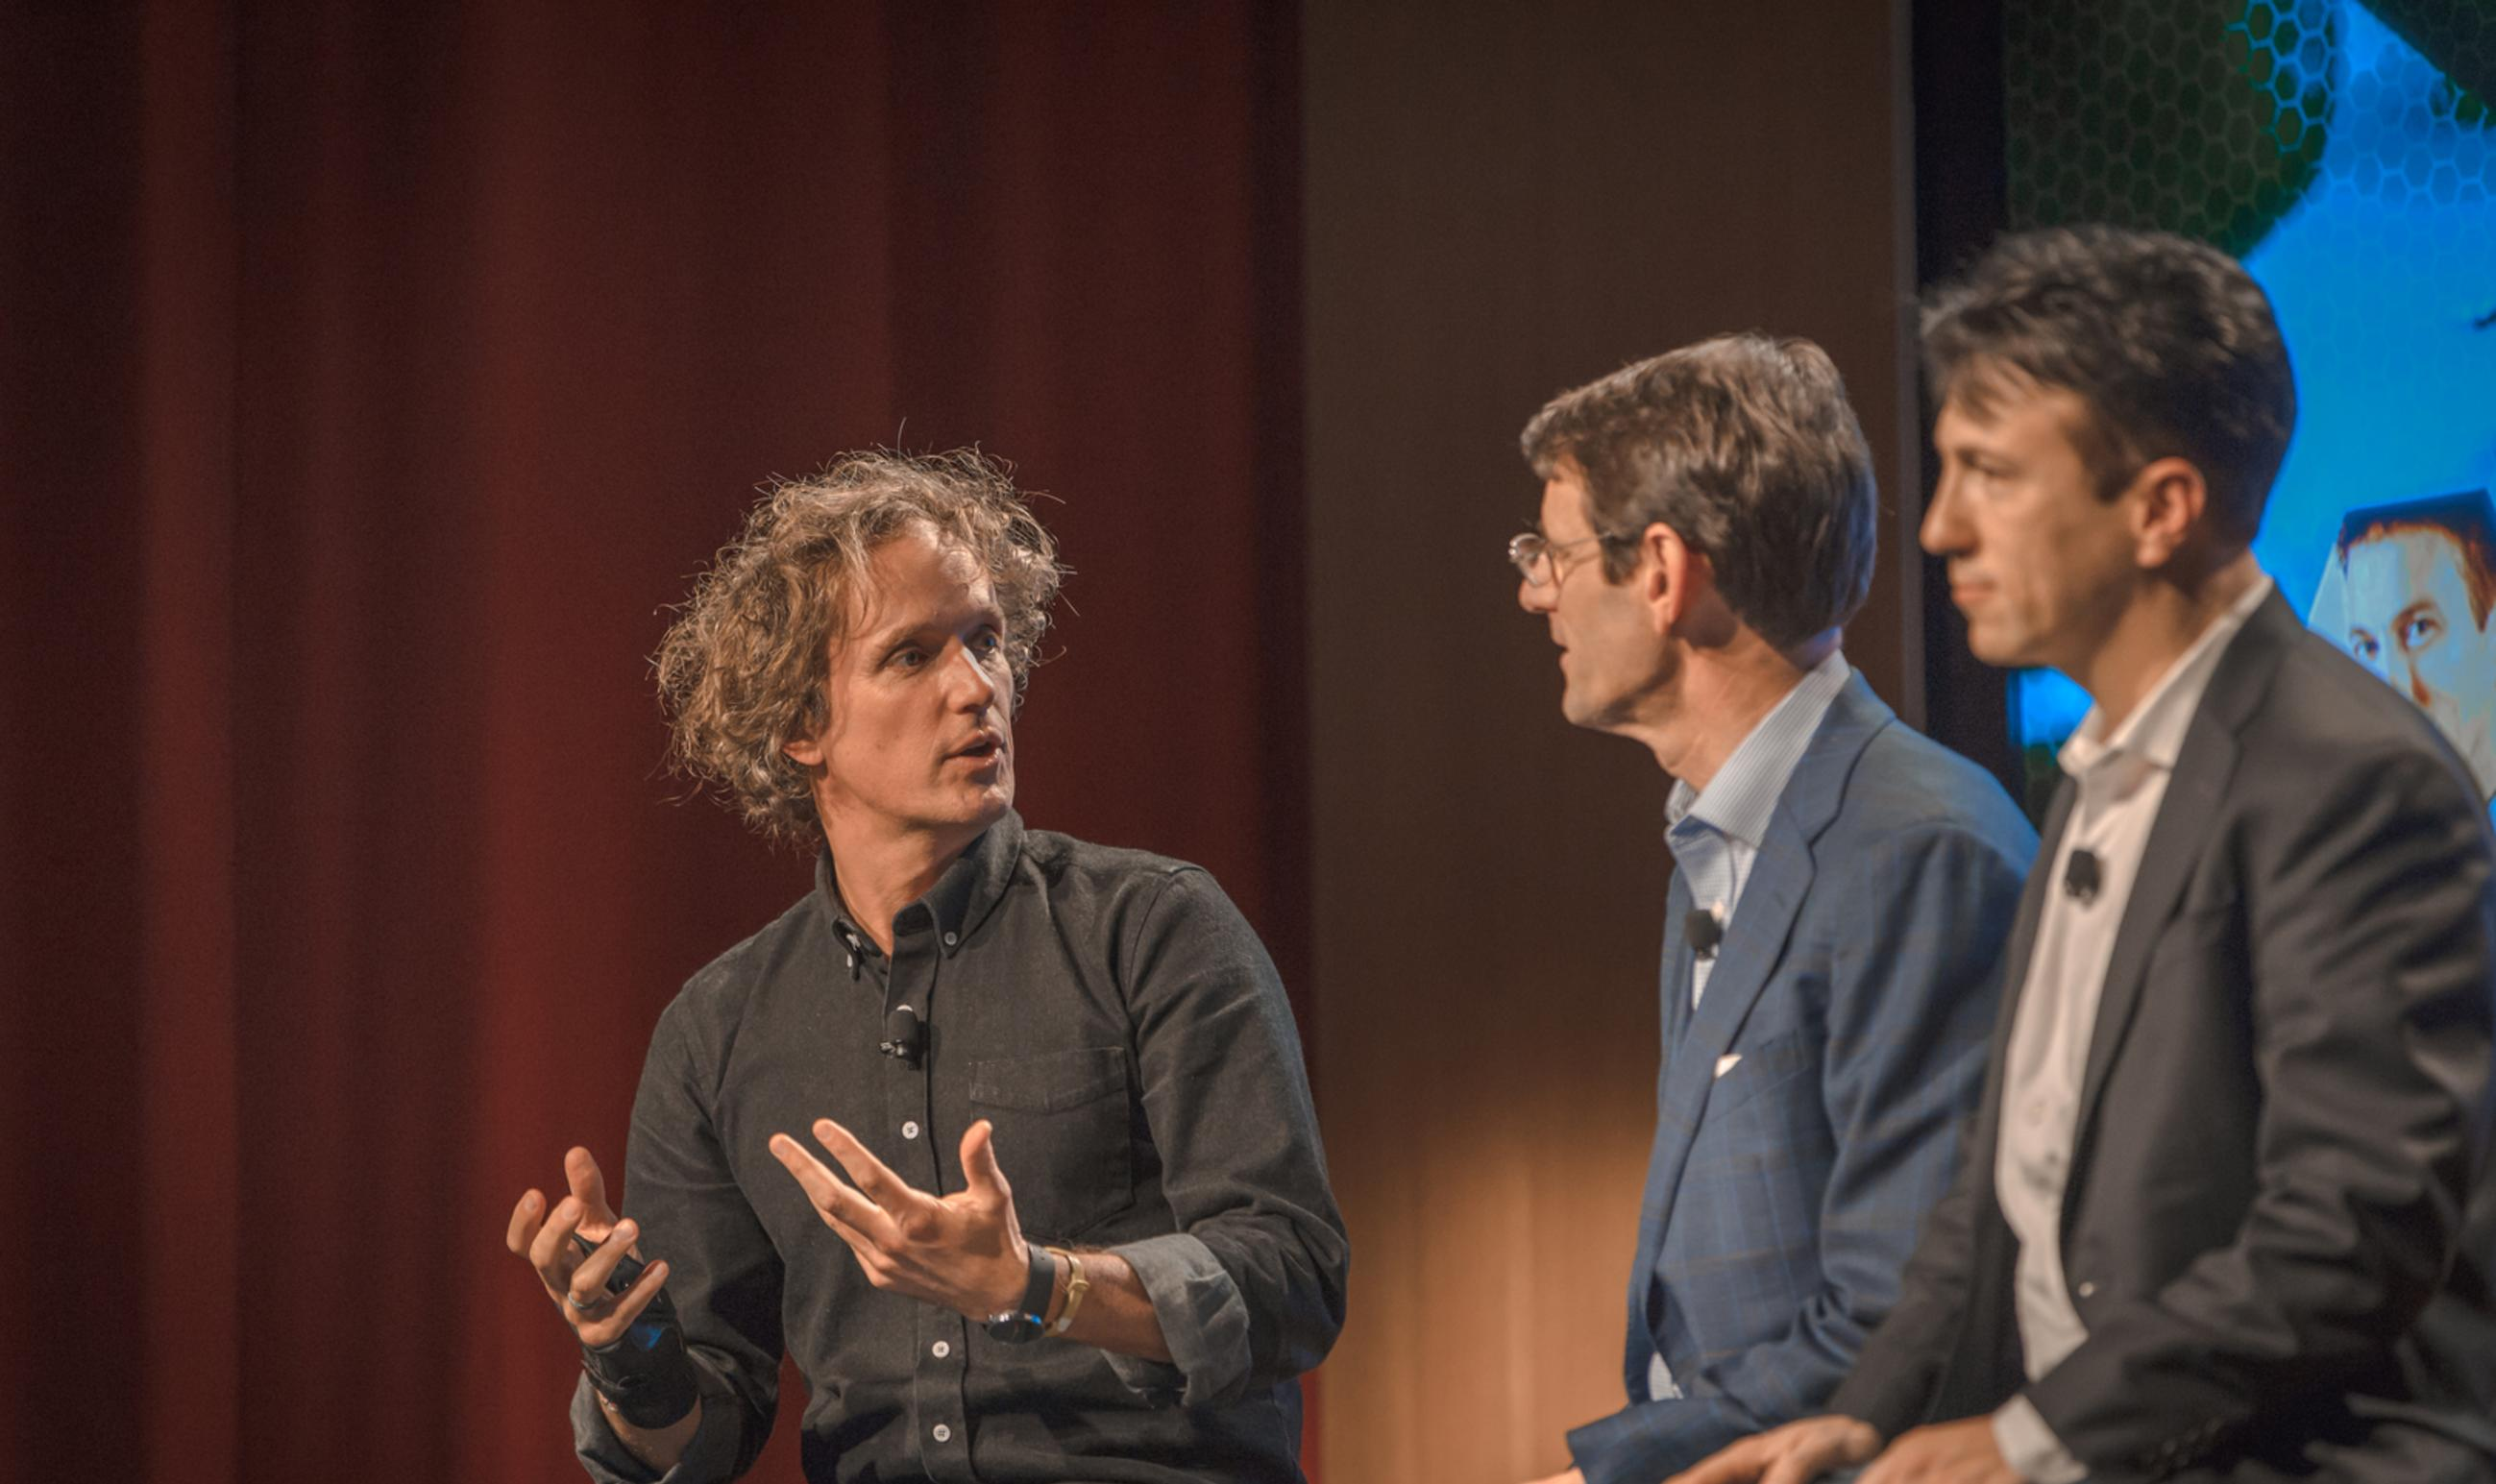 Yves Behar seating talking in event